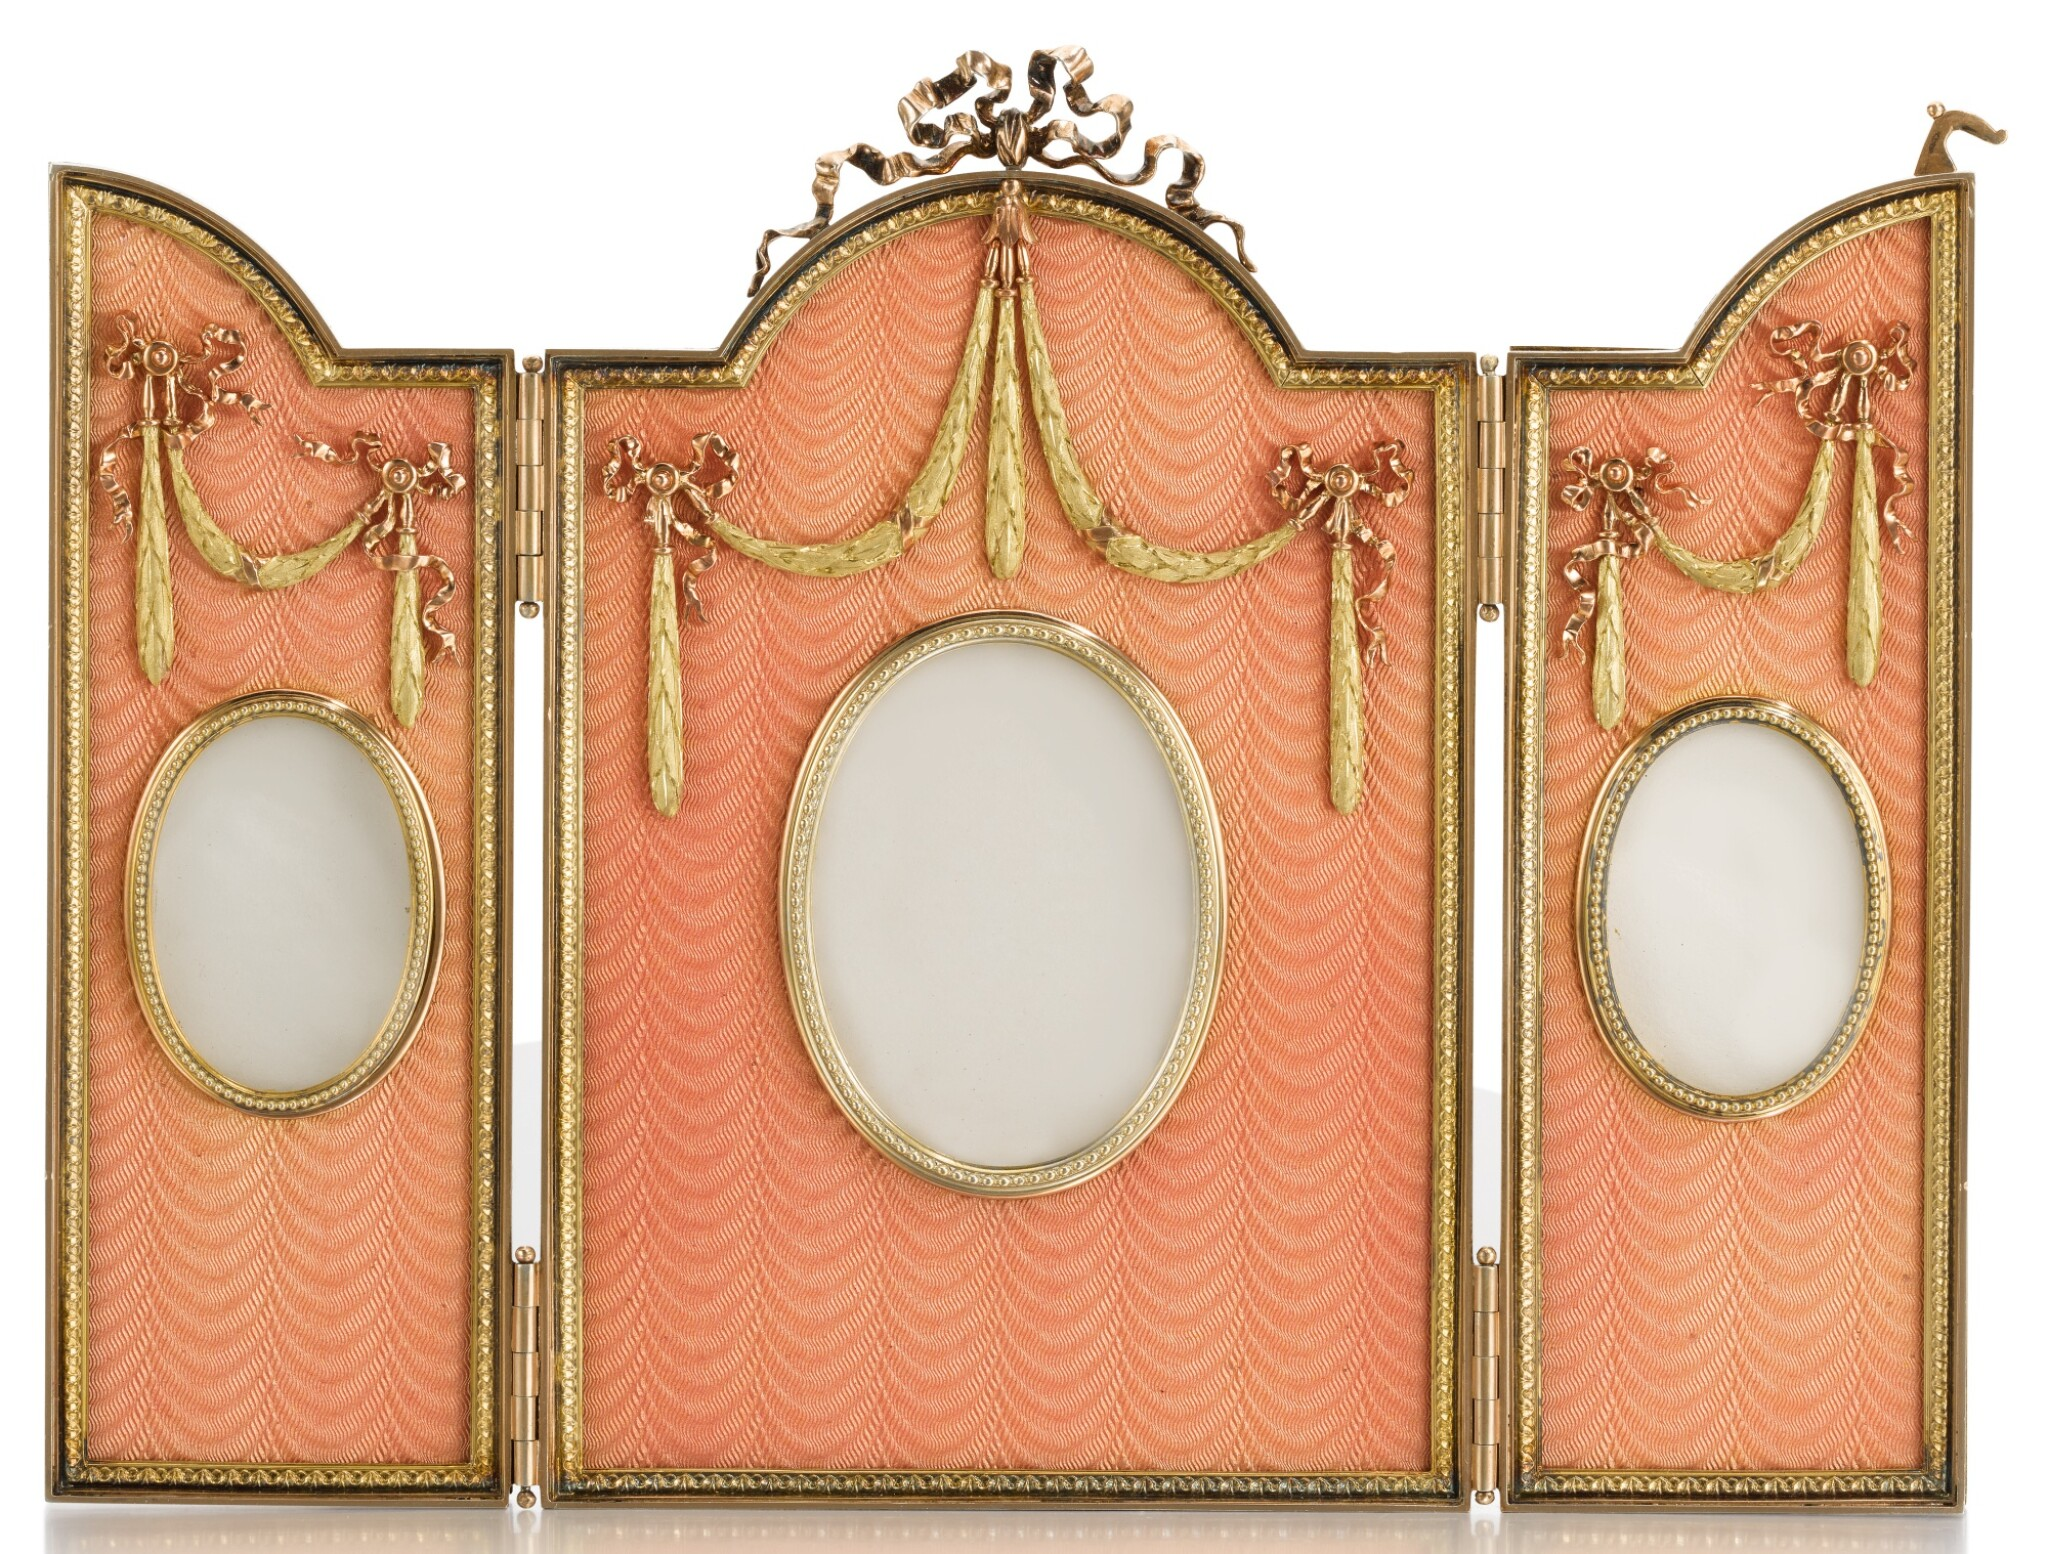 View full screen - View 1 of Lot 309. A FABERGÉ THREE-COLOUR GOLD-MOUNTED SILVER-GILT AND GUILLOCHÉ ENAMEL TRIPTYCH FRAME, WORKMASTER VICTOR AARNE, ST PETERSBURG, 1899-1903.